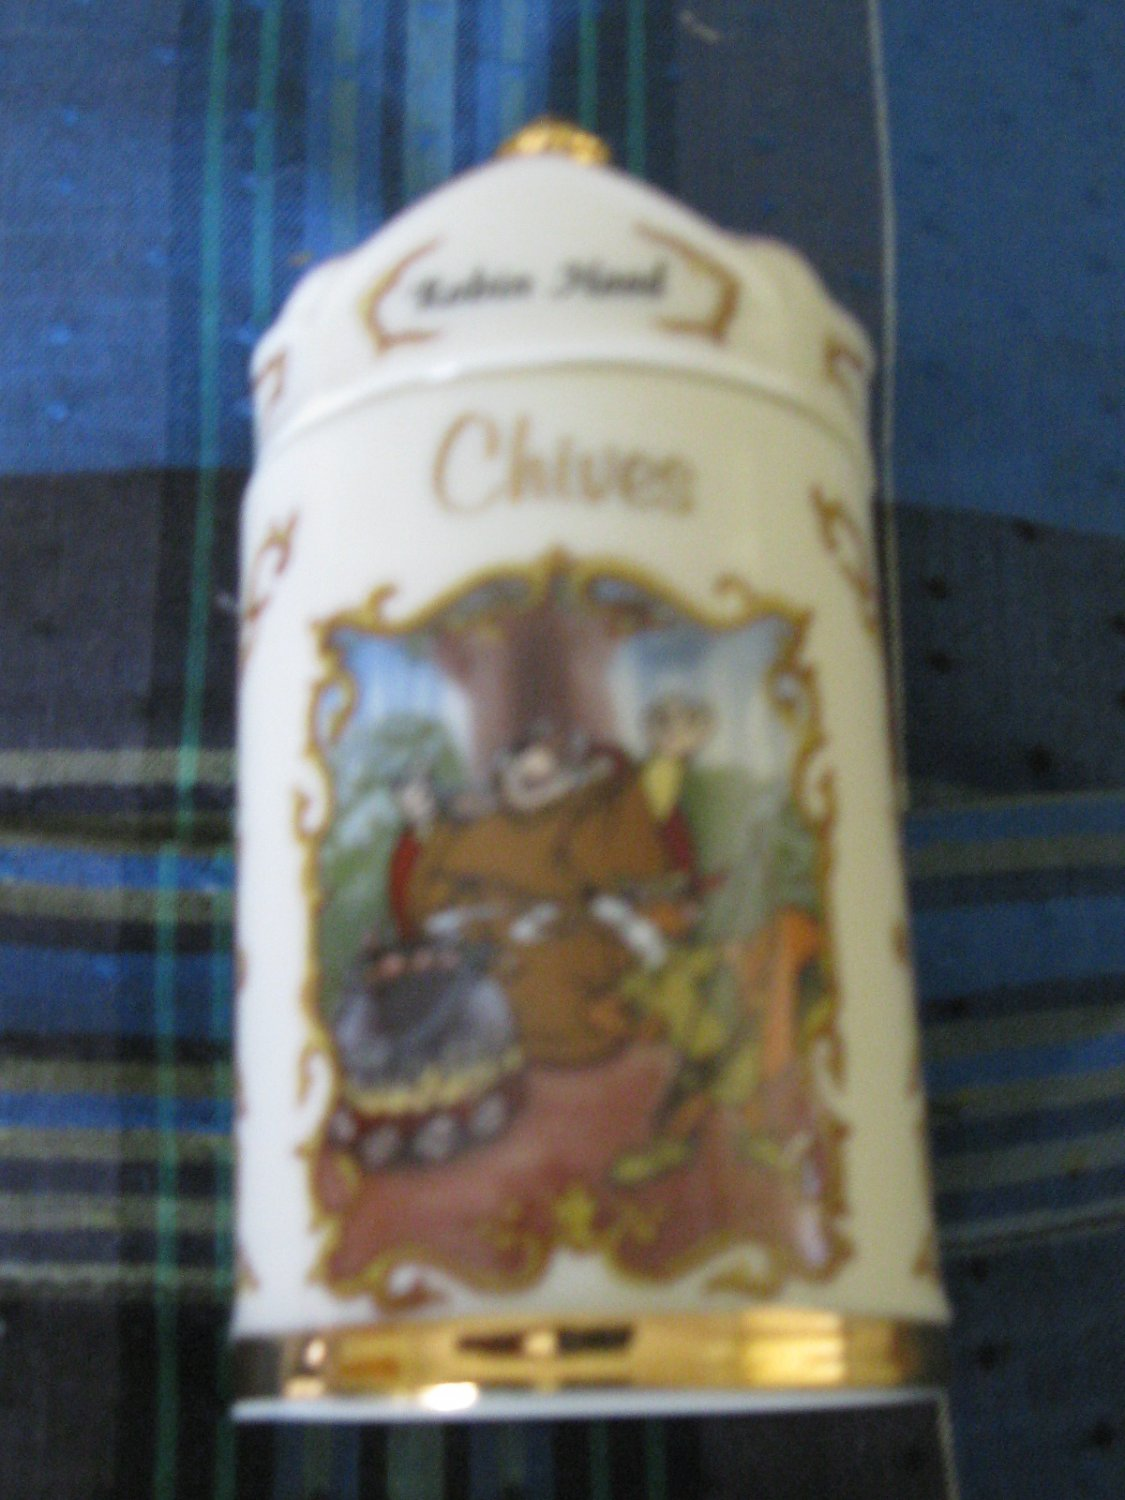 Awesome Disney Robin Hood Chives Spice Jar Lenox 1995 Collection